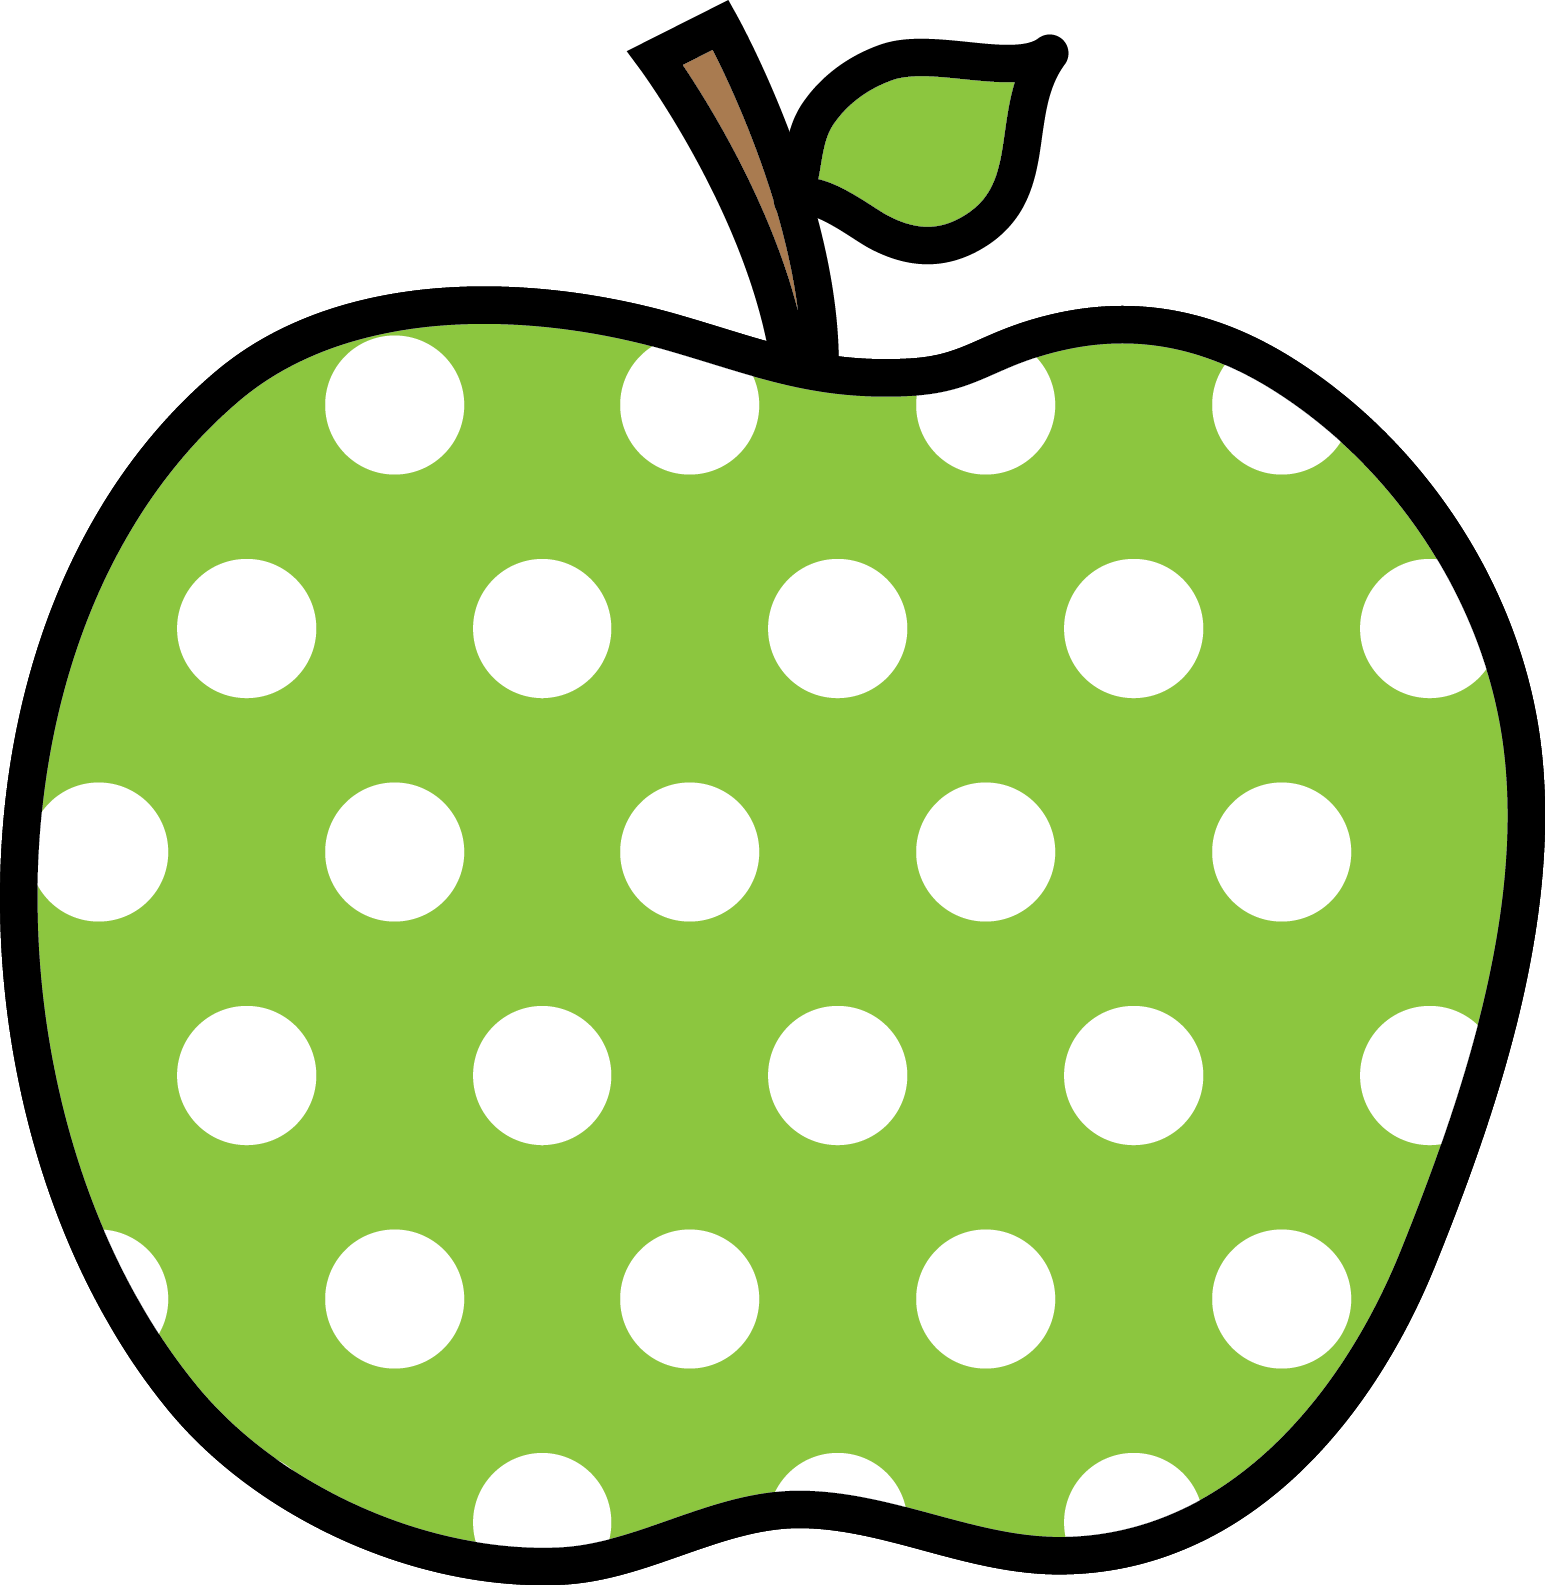 Letter a apple dot page clipart png free library 28+ Collection of Polka Dot Apple Clipart | High quality, free ... png free library